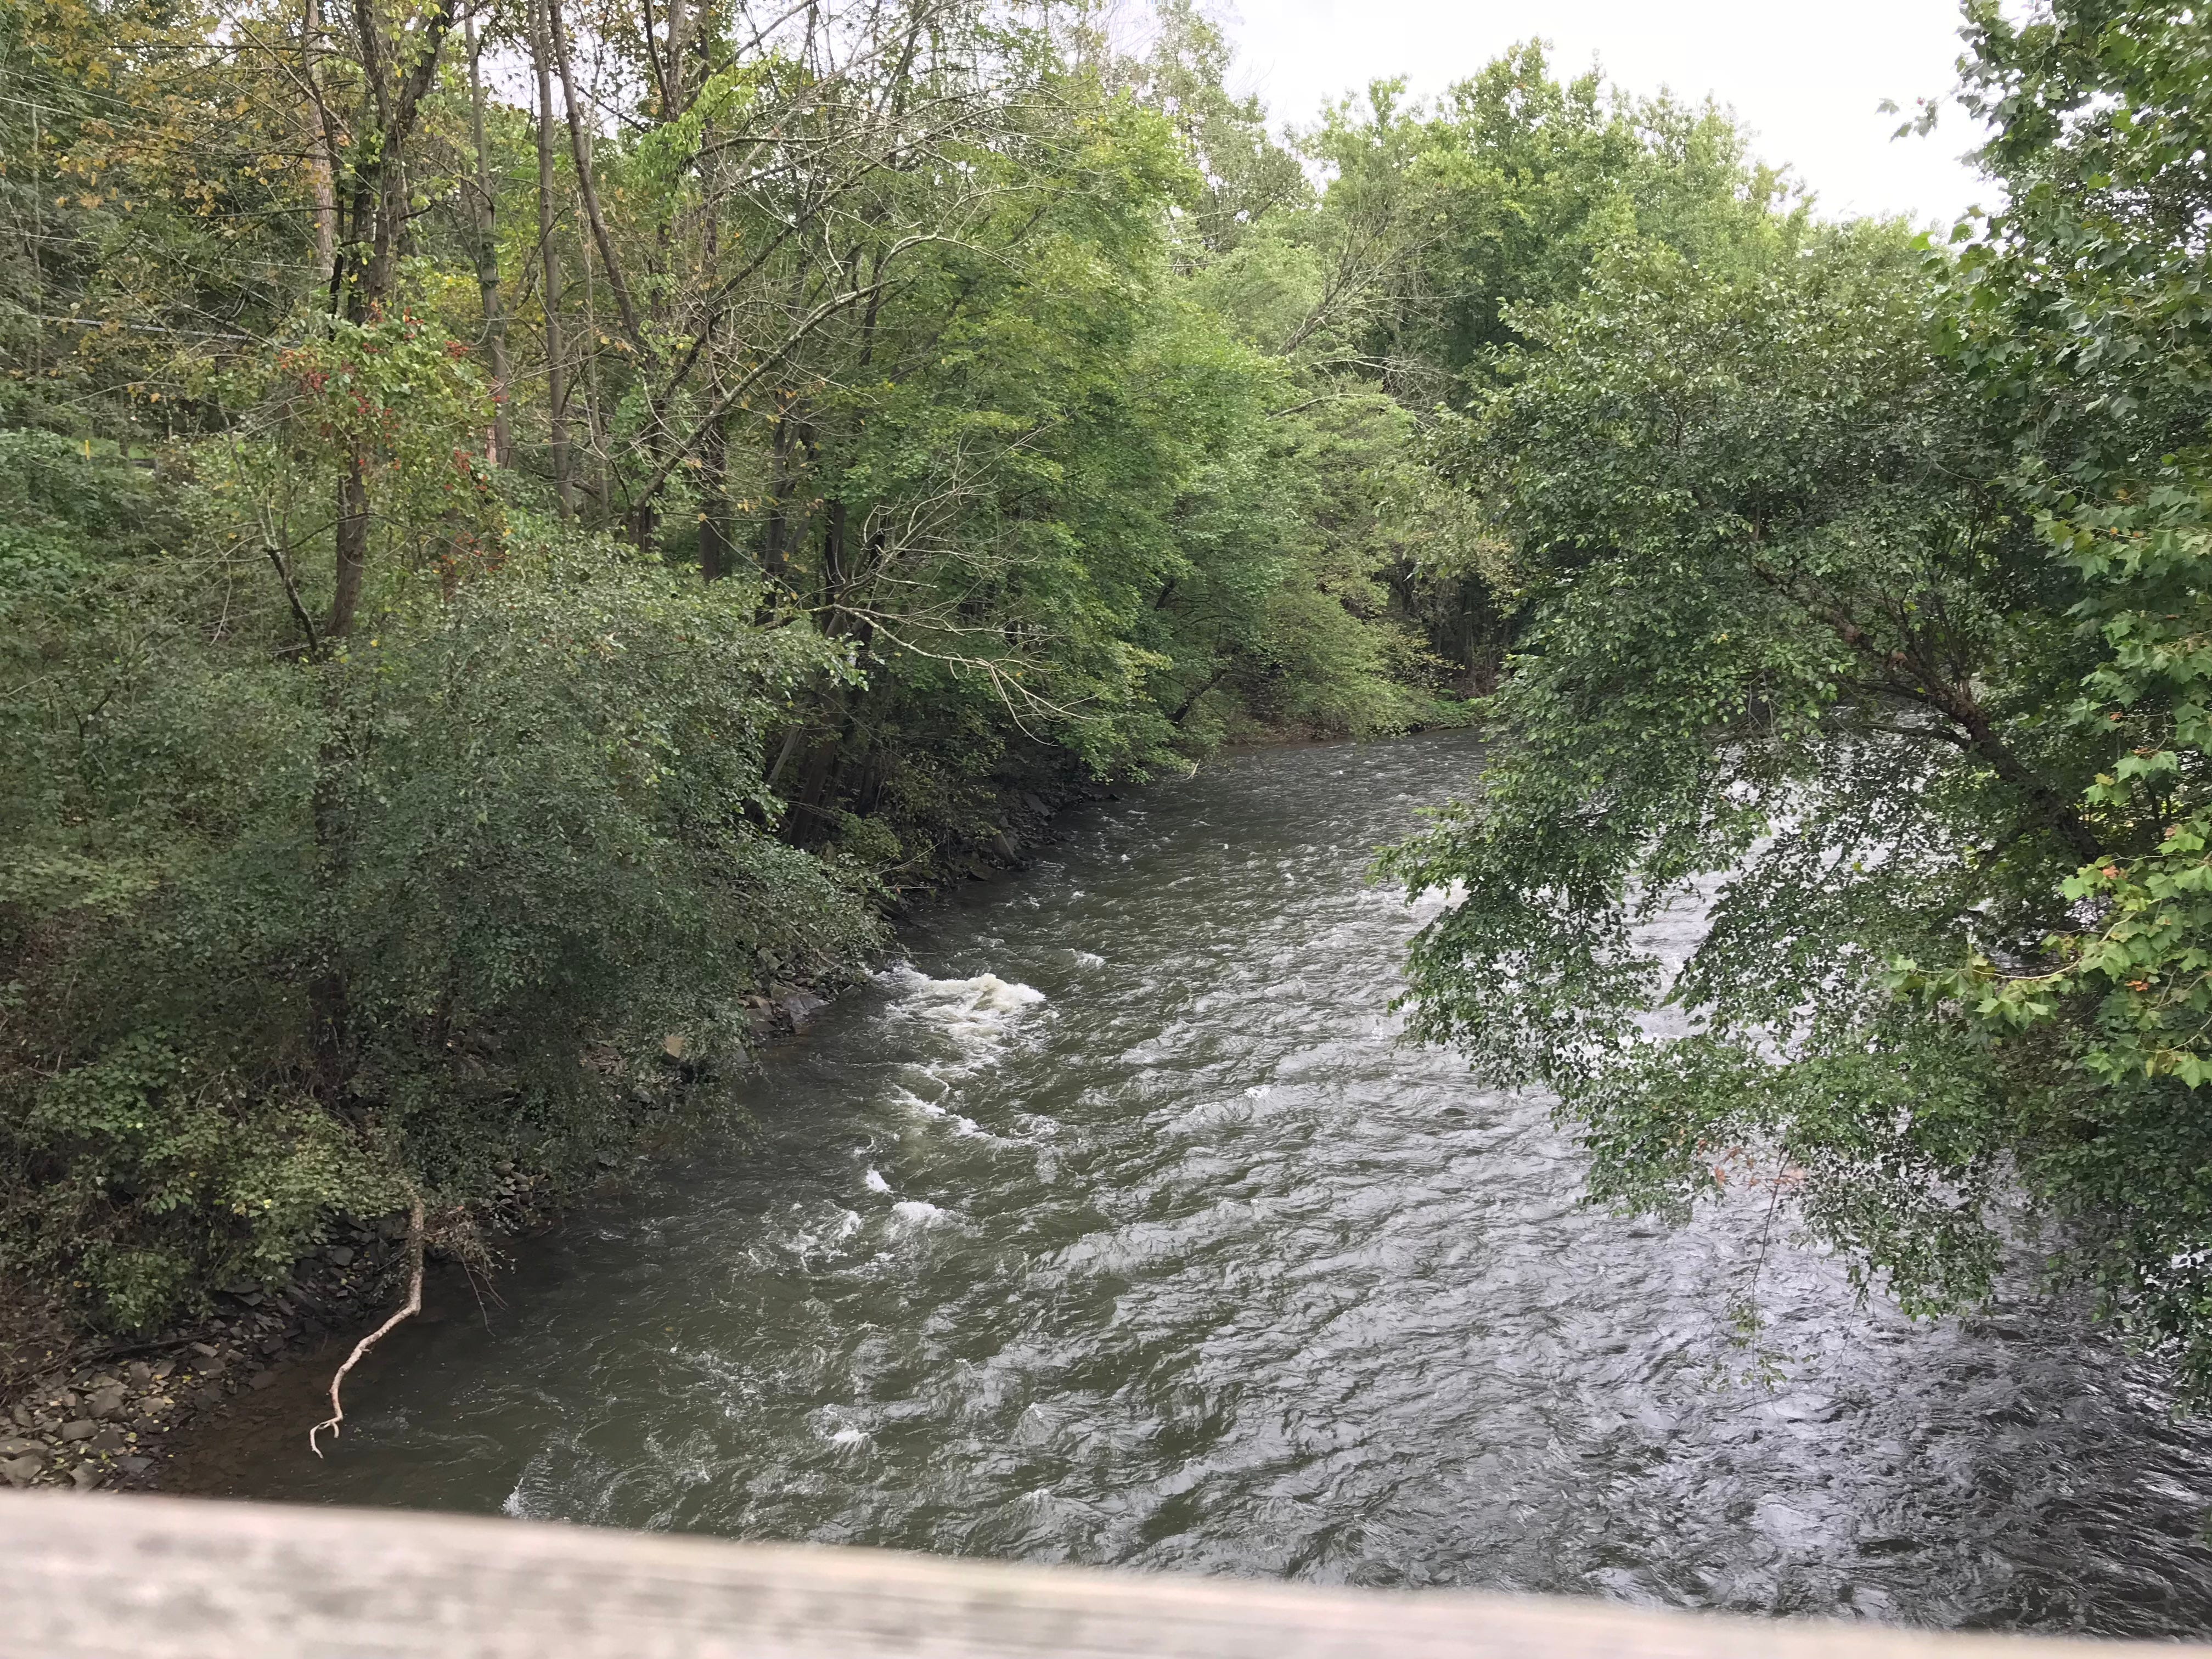 A view of Swatara Creek from a footbridge on the Swatara Rail Trail Sept. 14, 2018. Hurricane Florence could bring torrential rain and flooding to the Lebanon County area Sept. 17 and 18.